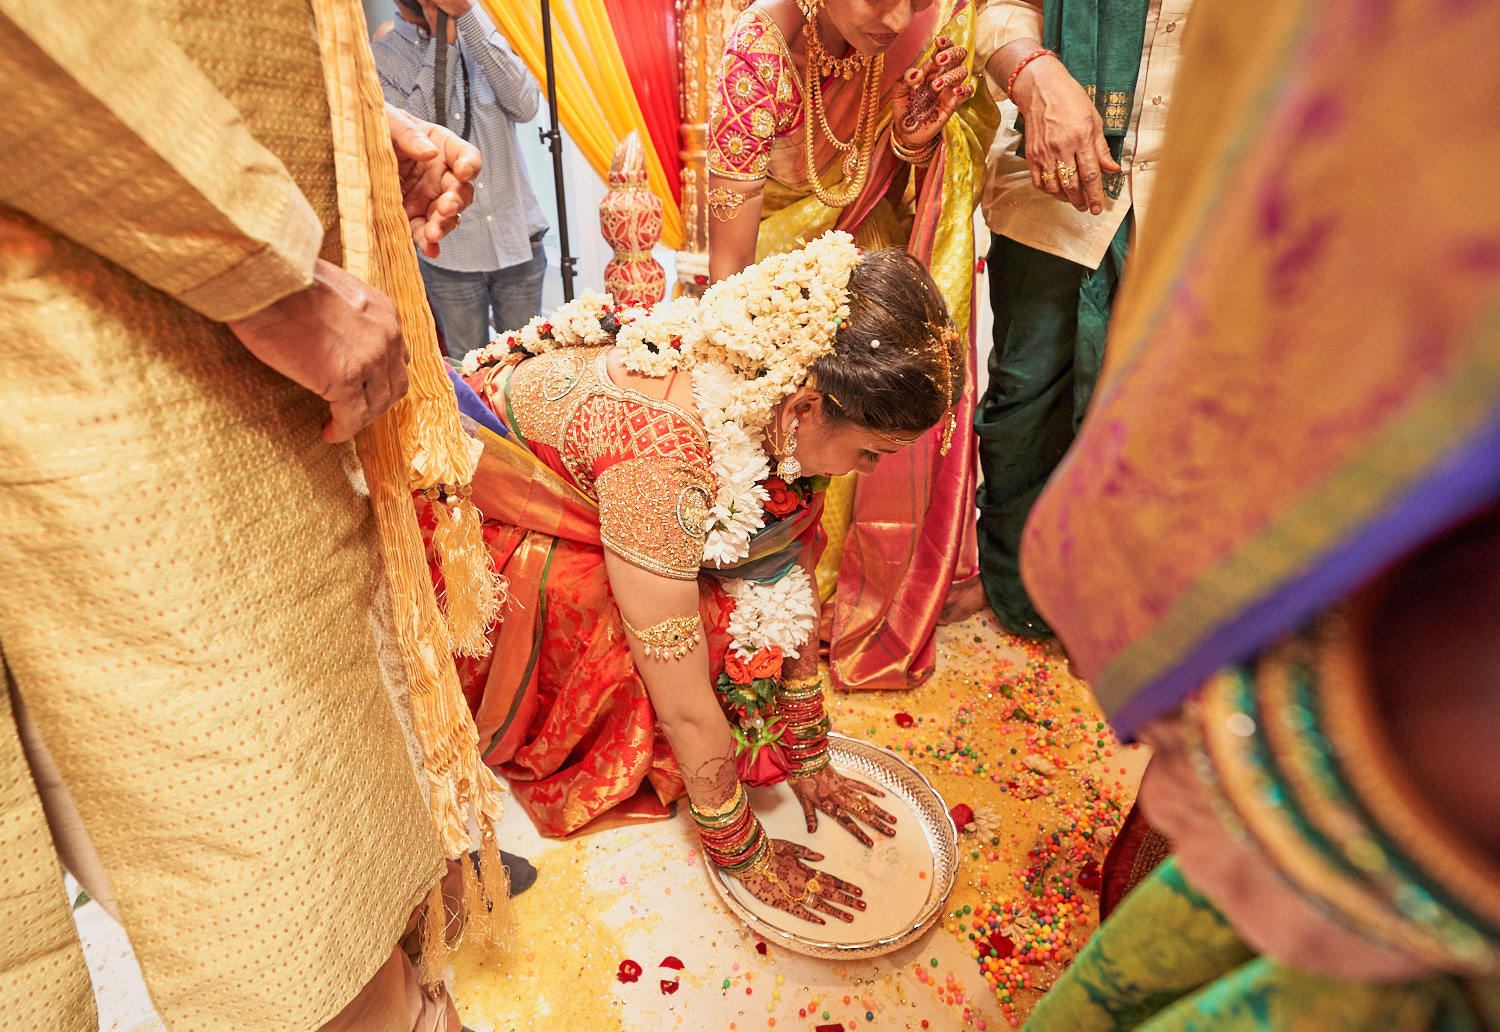 south-indian-wedding-ceremony-photography-by-afewgoodclicks-net-in-saratoga 276.jpg